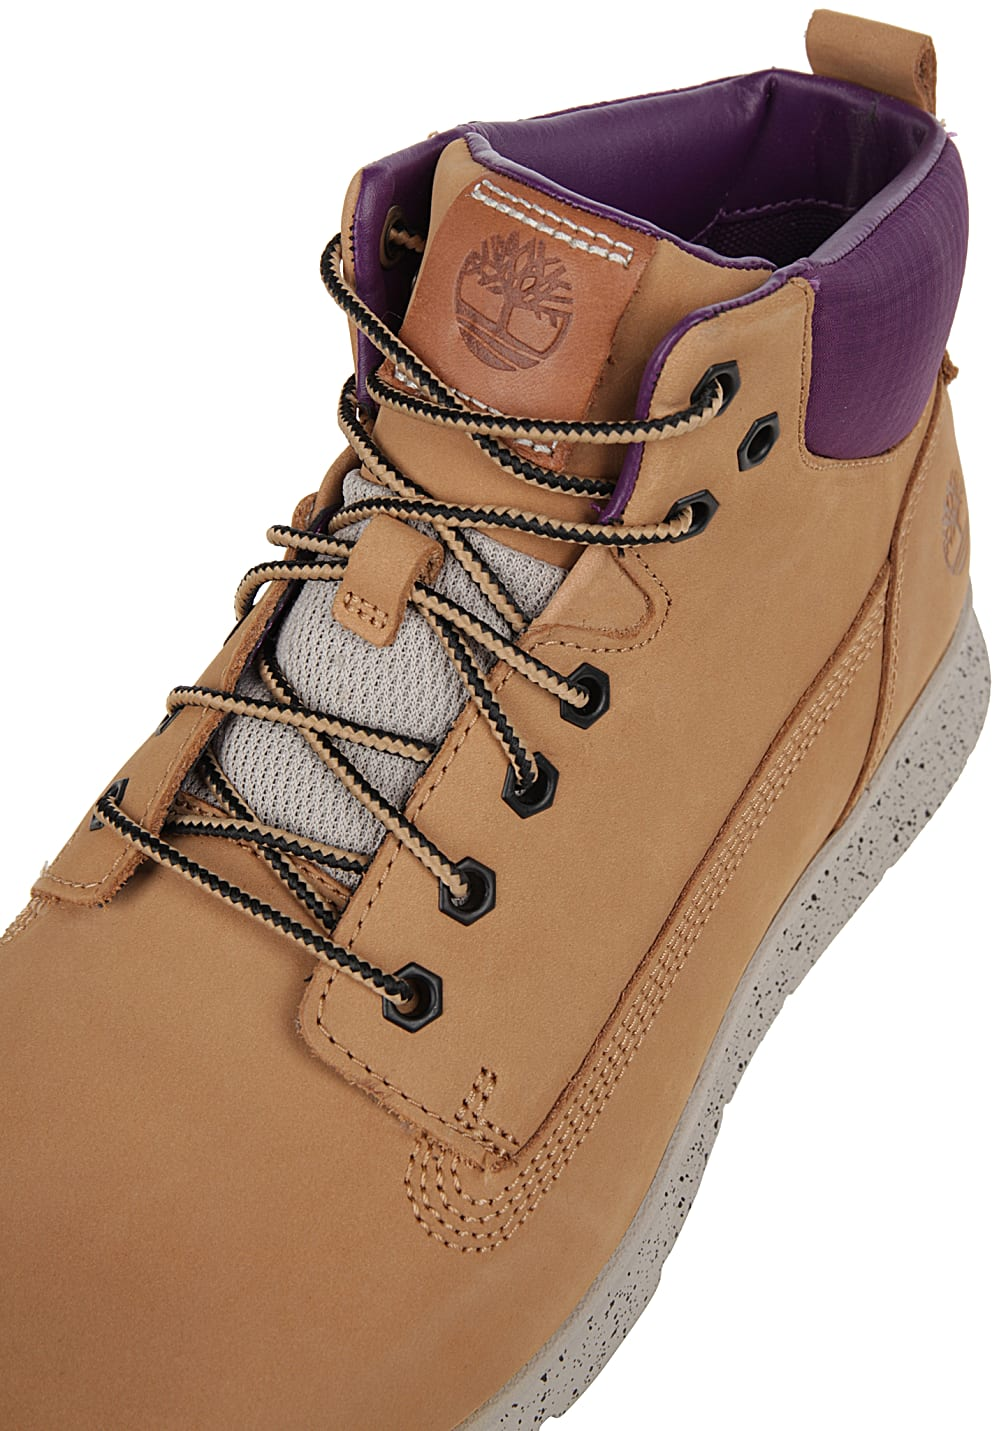 TIMBERLAND Killington Chukka Baskets pour Homme Marron